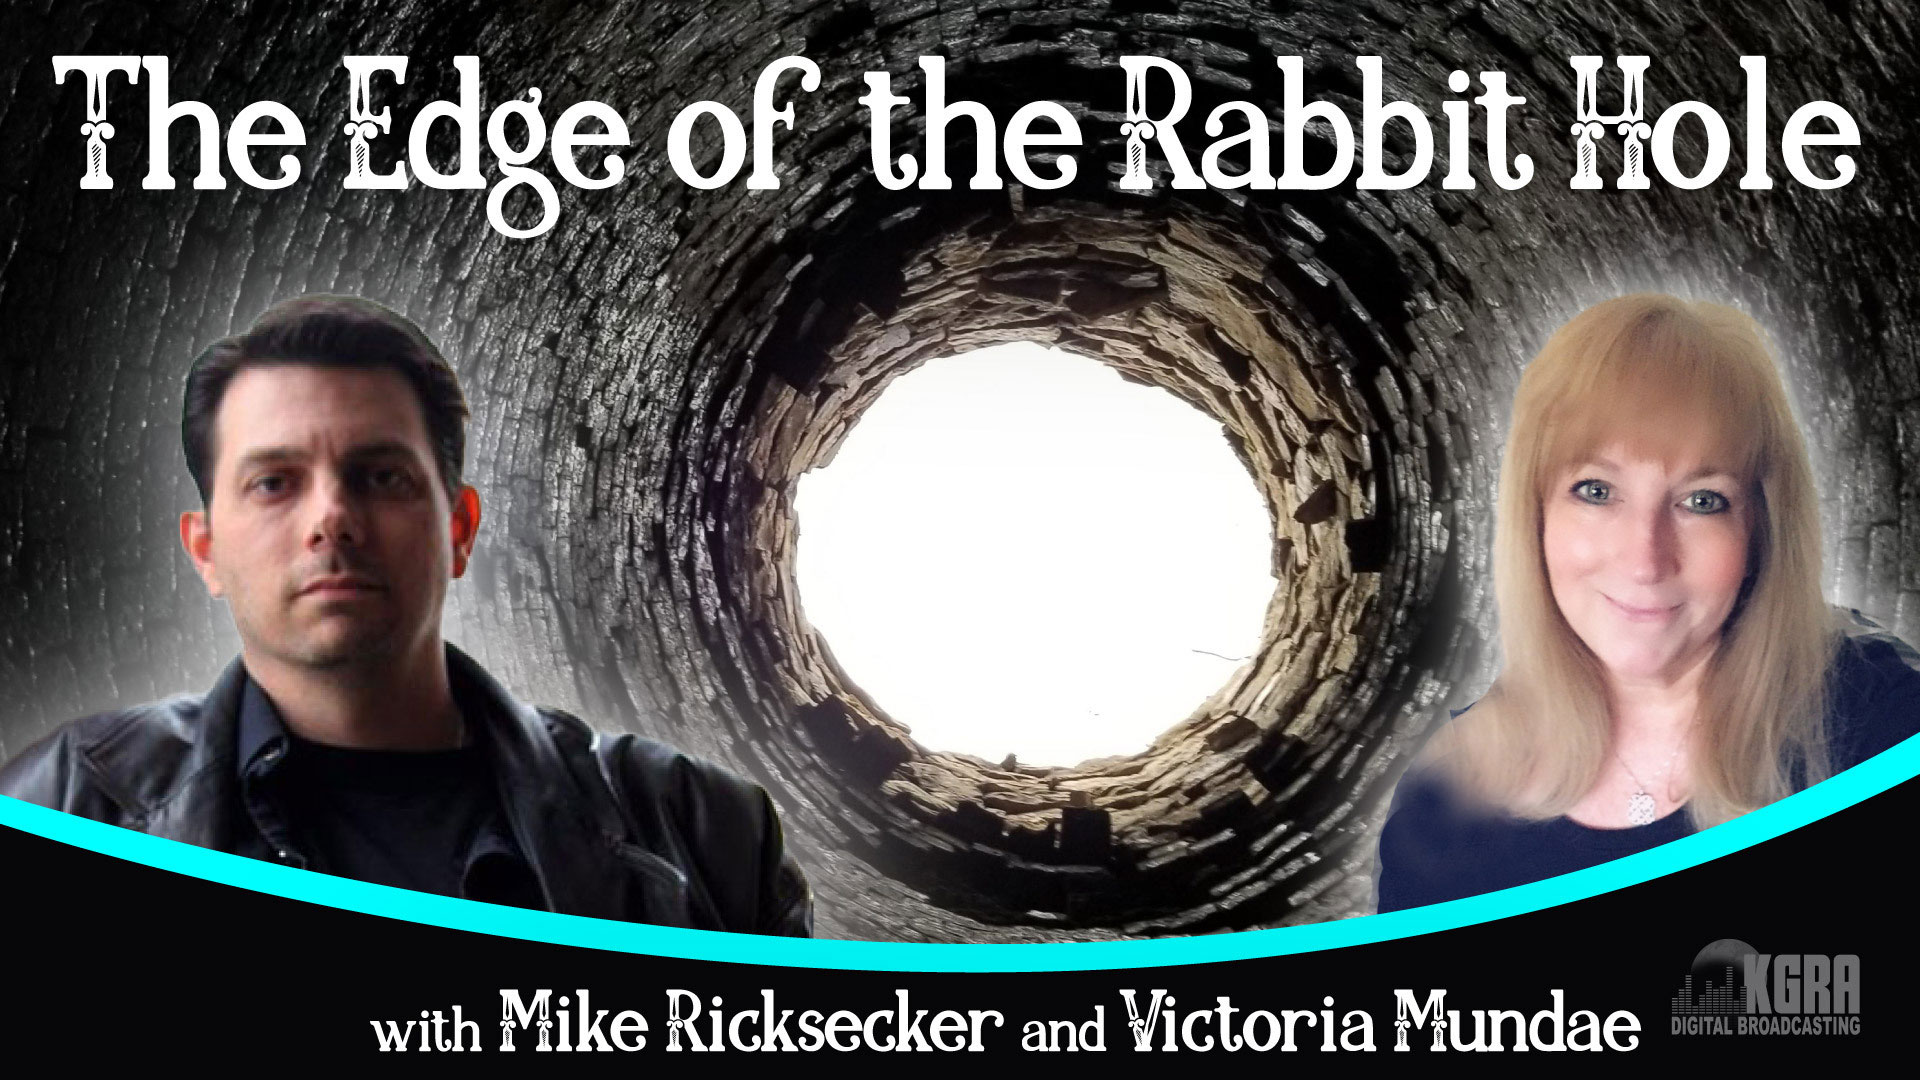 Edge of the Rabbit Hole